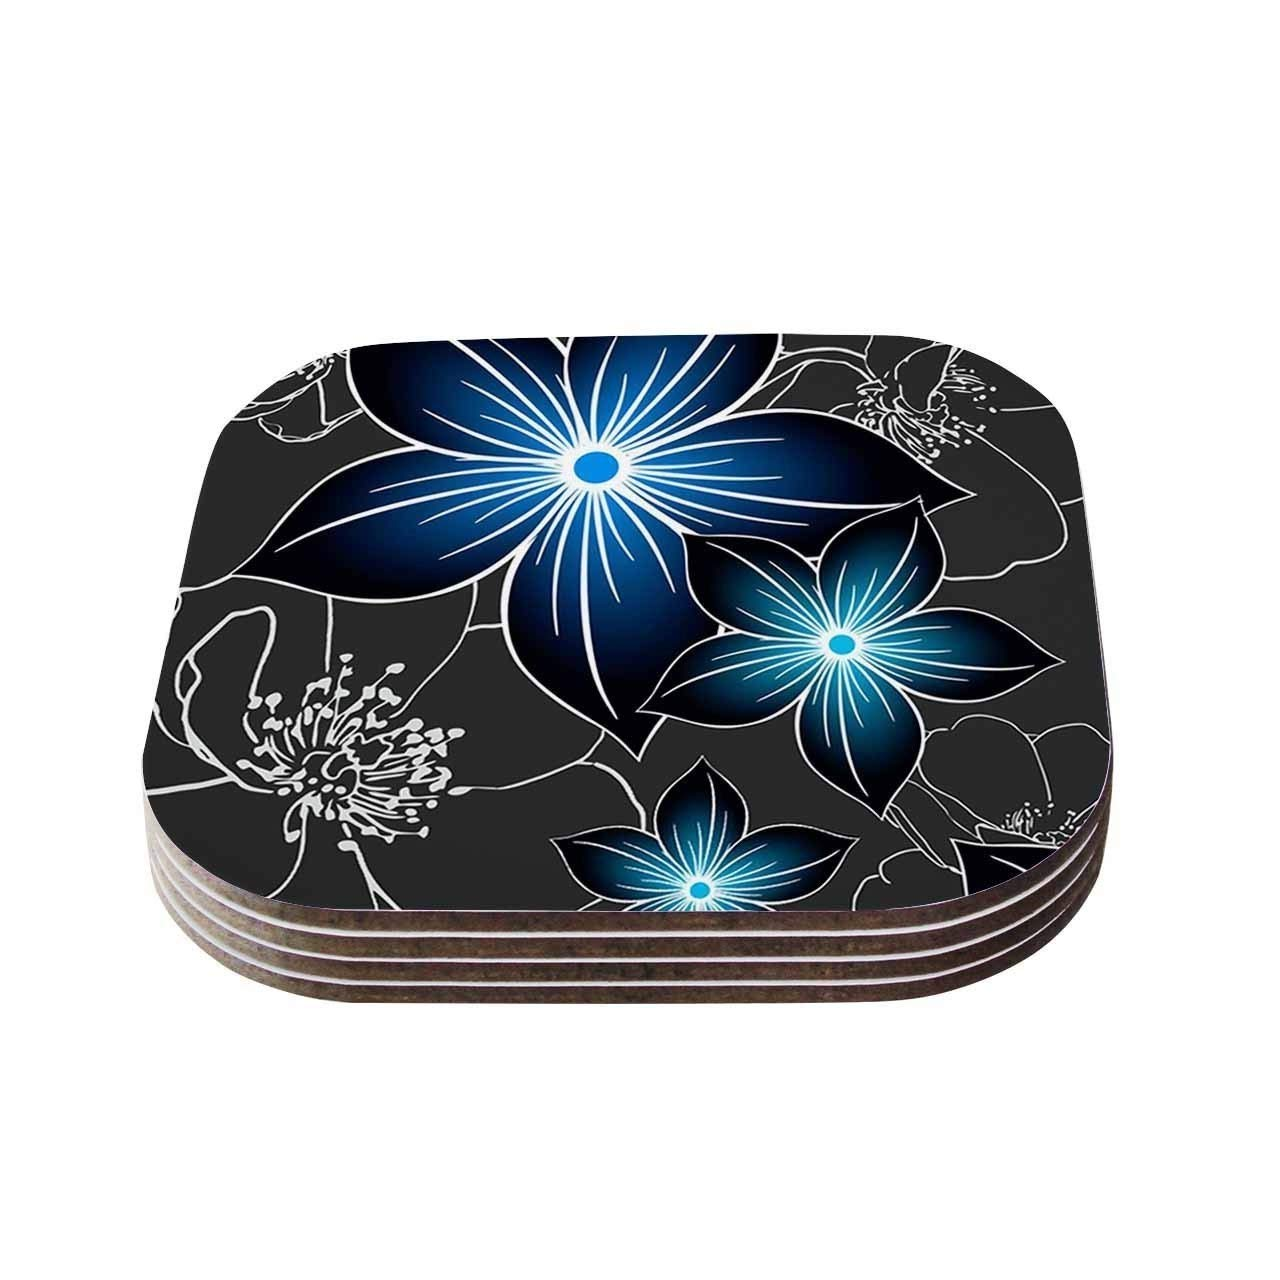 Set of 4- Gray Blue White Charcoal and Cobalt Flower Wooden Coasters, Floral Themed Square Shaped Drink Mat, Home Decor Paisley Garden Nature Drinkware, Compressed Wood